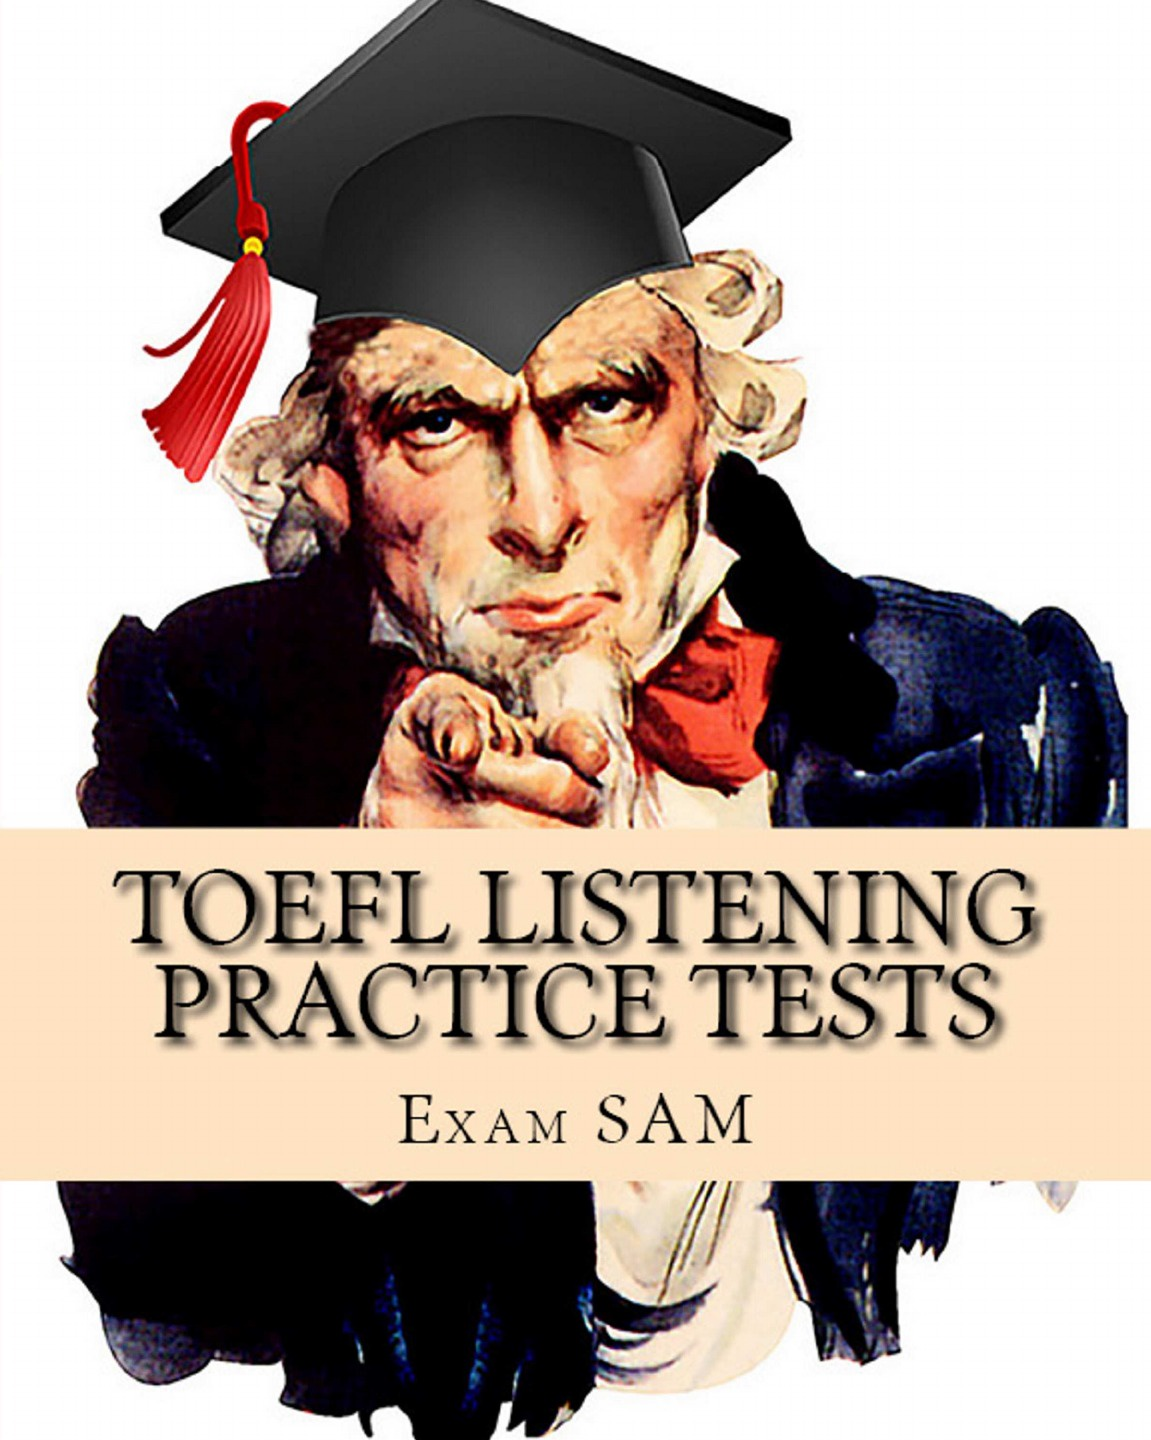 Exam SAM TOEFL Listening Practice Tests. TOEFL Listening Preparation for the Internet-based and Paper Delivered Tests hedwig teglasi essentials of tat and other storytelling assessments